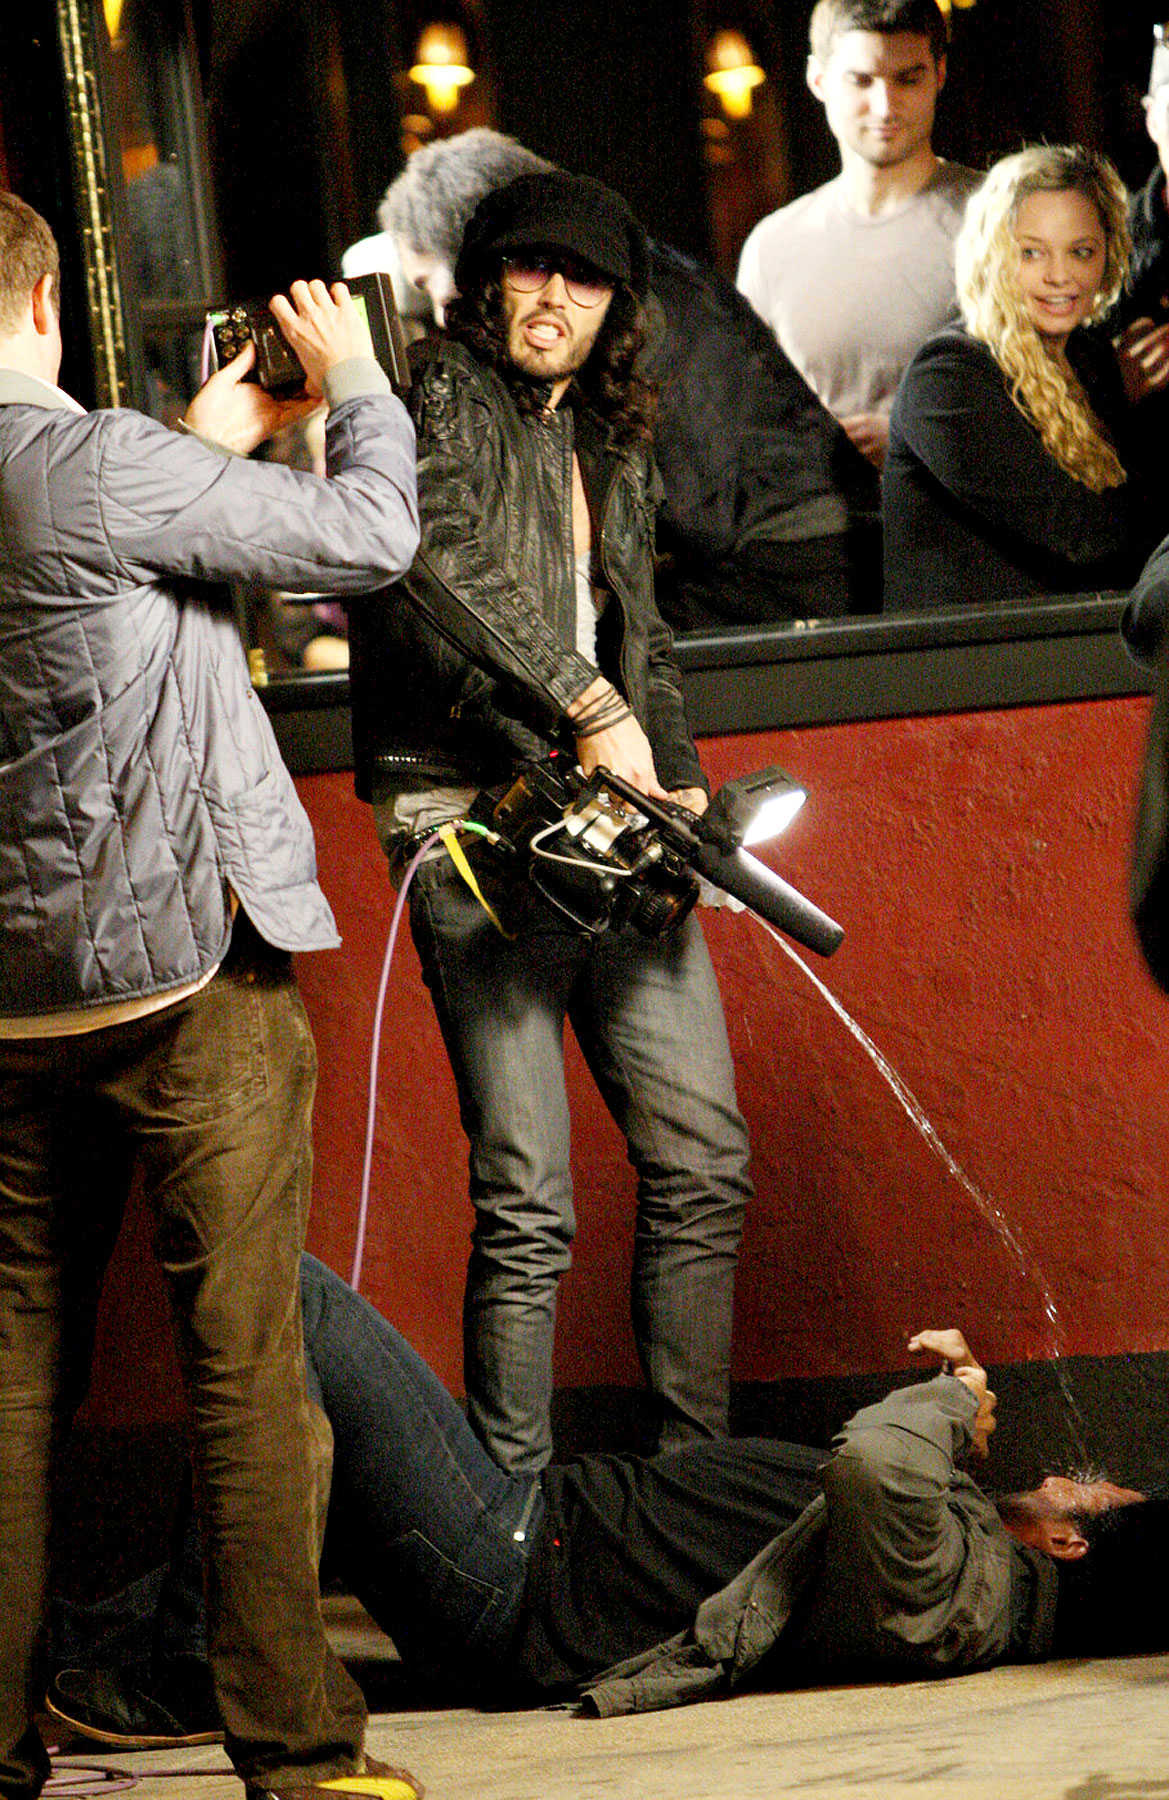 Russell Brand Peeing on Paparazzi: What Up With That? (PHOTOS)